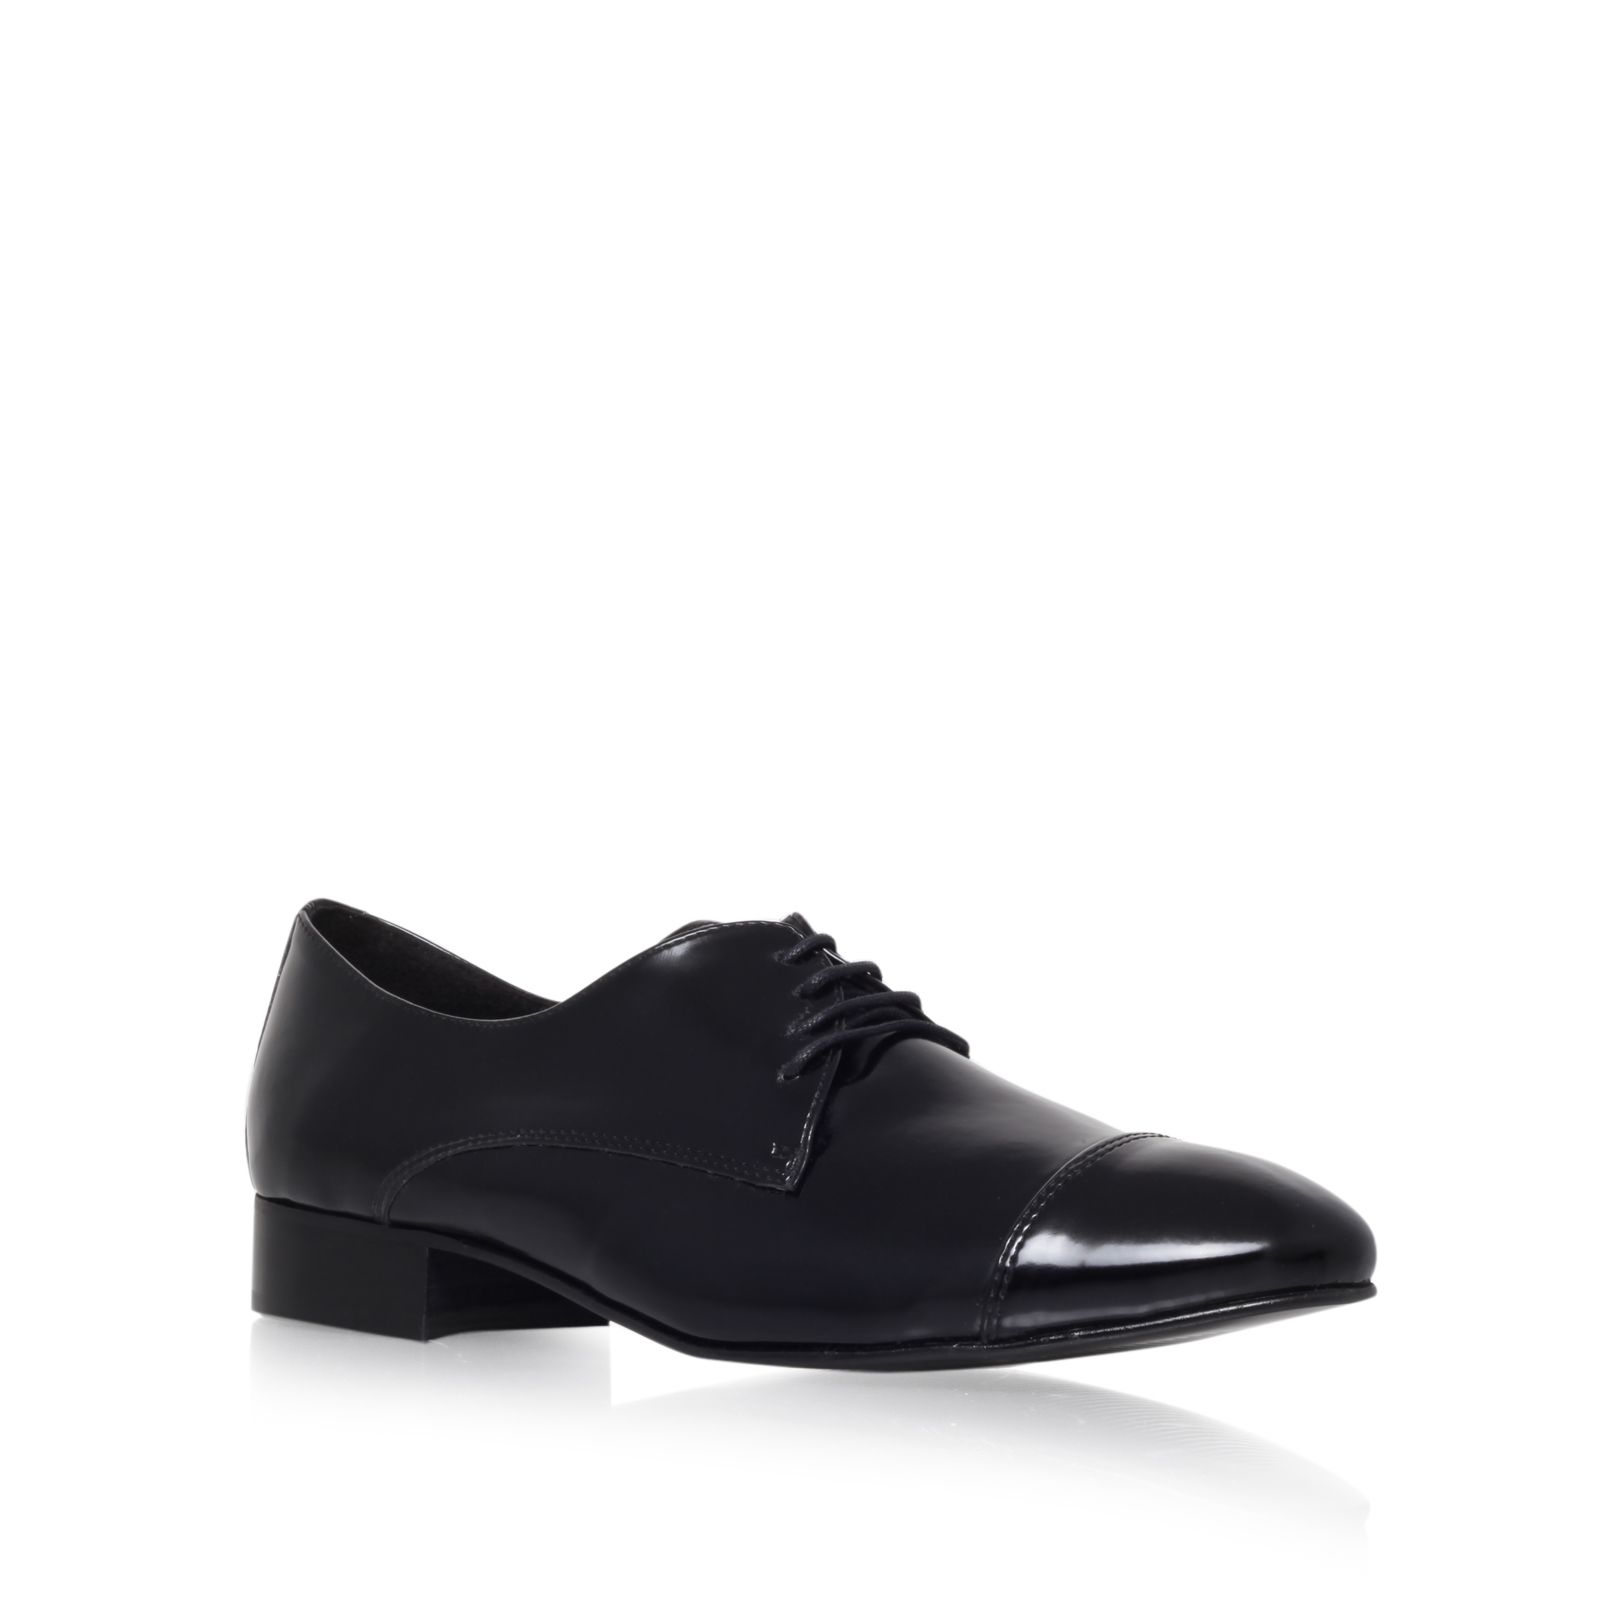 Lennox flat brogue shoes